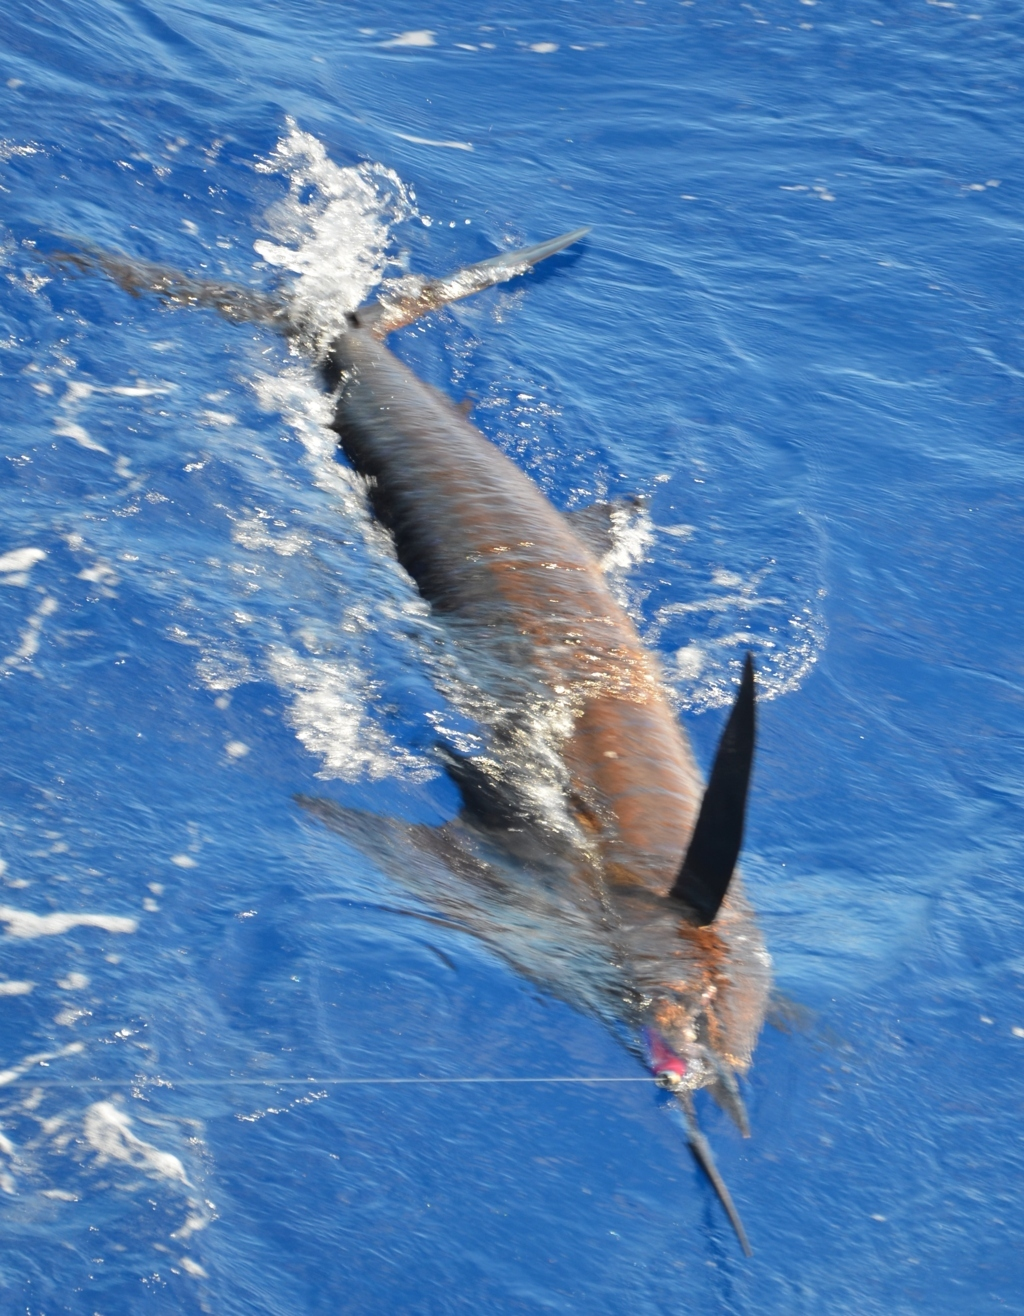 Released Sailfish - Rod Fishing Club - Rodrigues Island - Mauritius - Indian Ocean